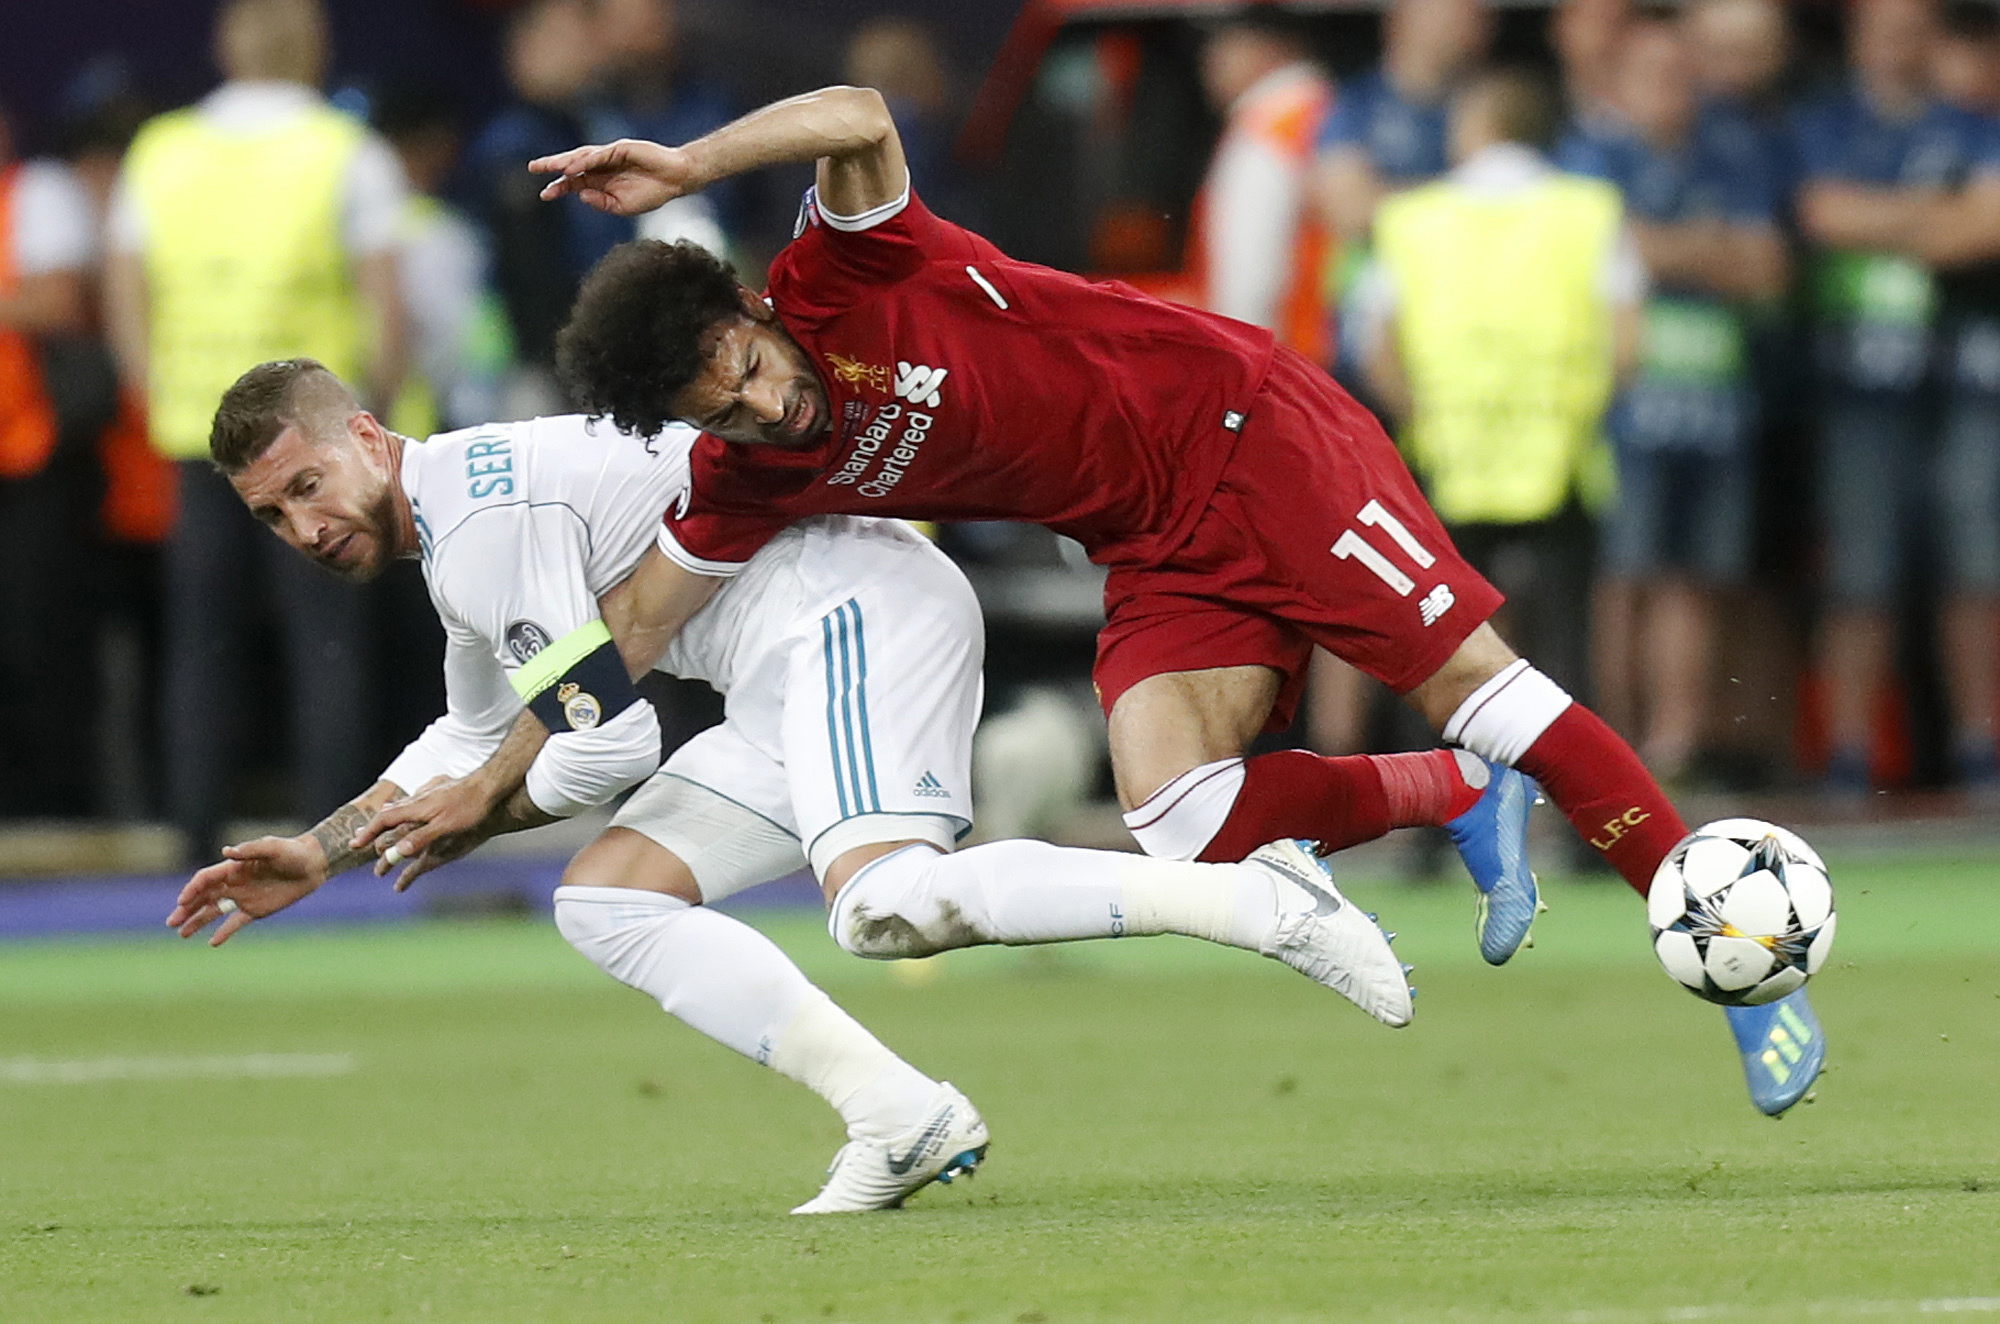 Of course Salah's time in the final didn't last long. Image: PA Images